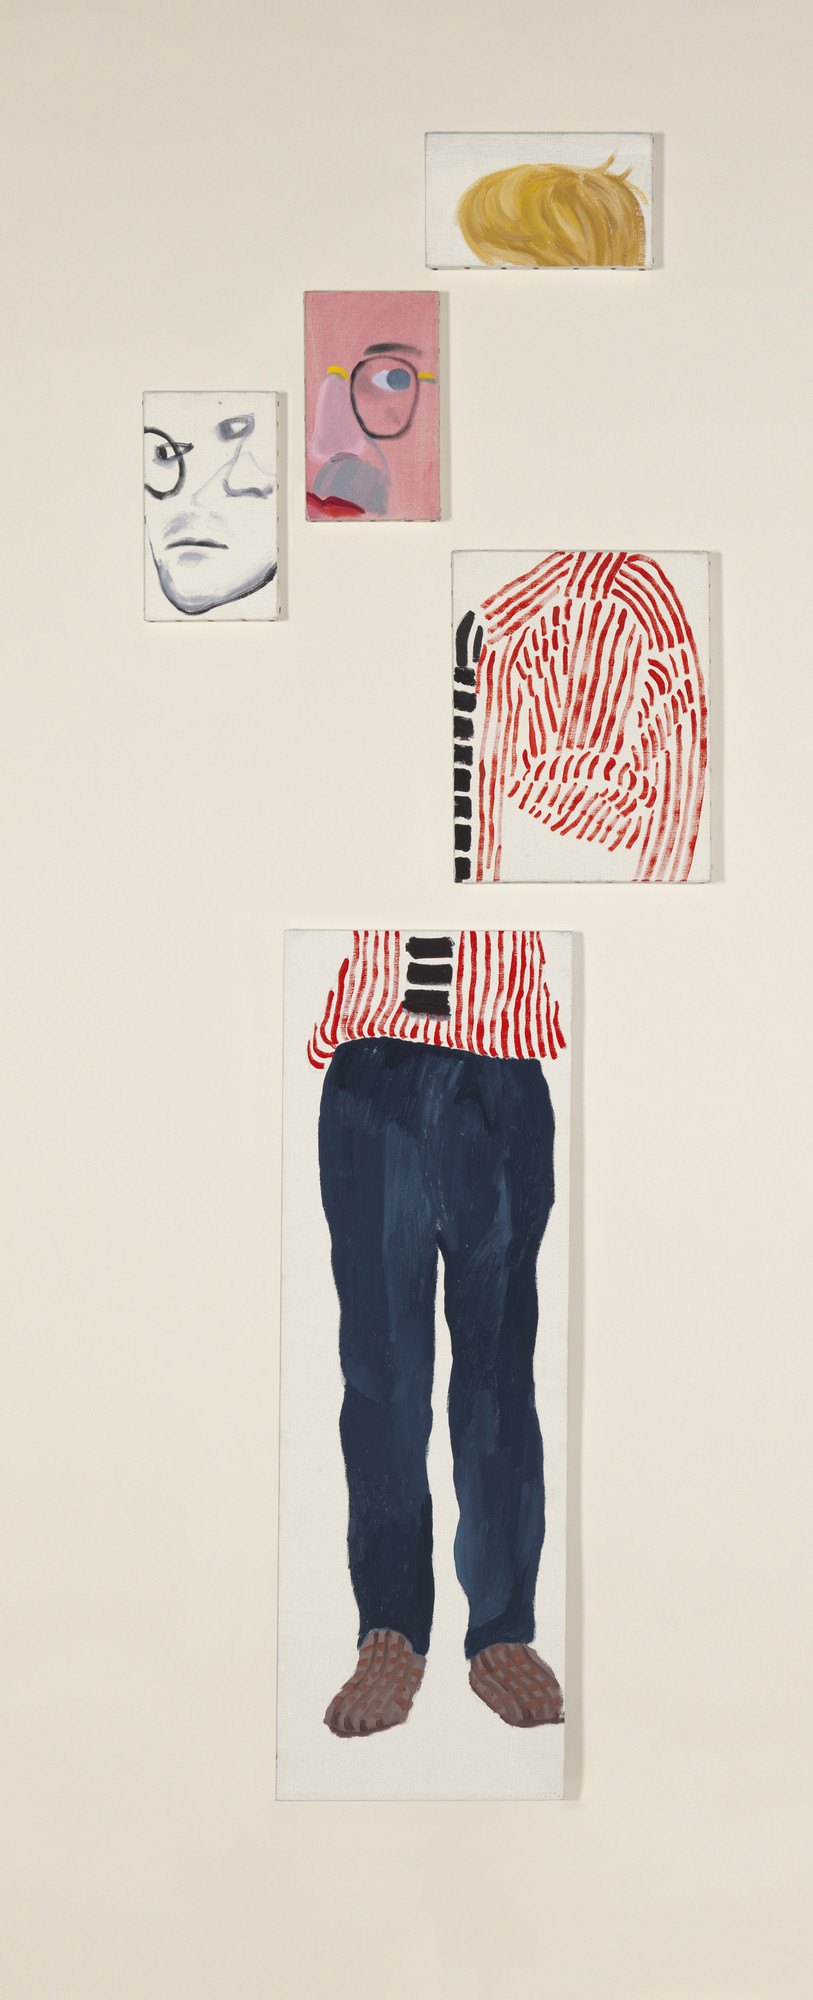 "David Hockney, ""Self Portrait,"" 1984/1986, oil on five canvases, 68.75 inches by 24 inches."